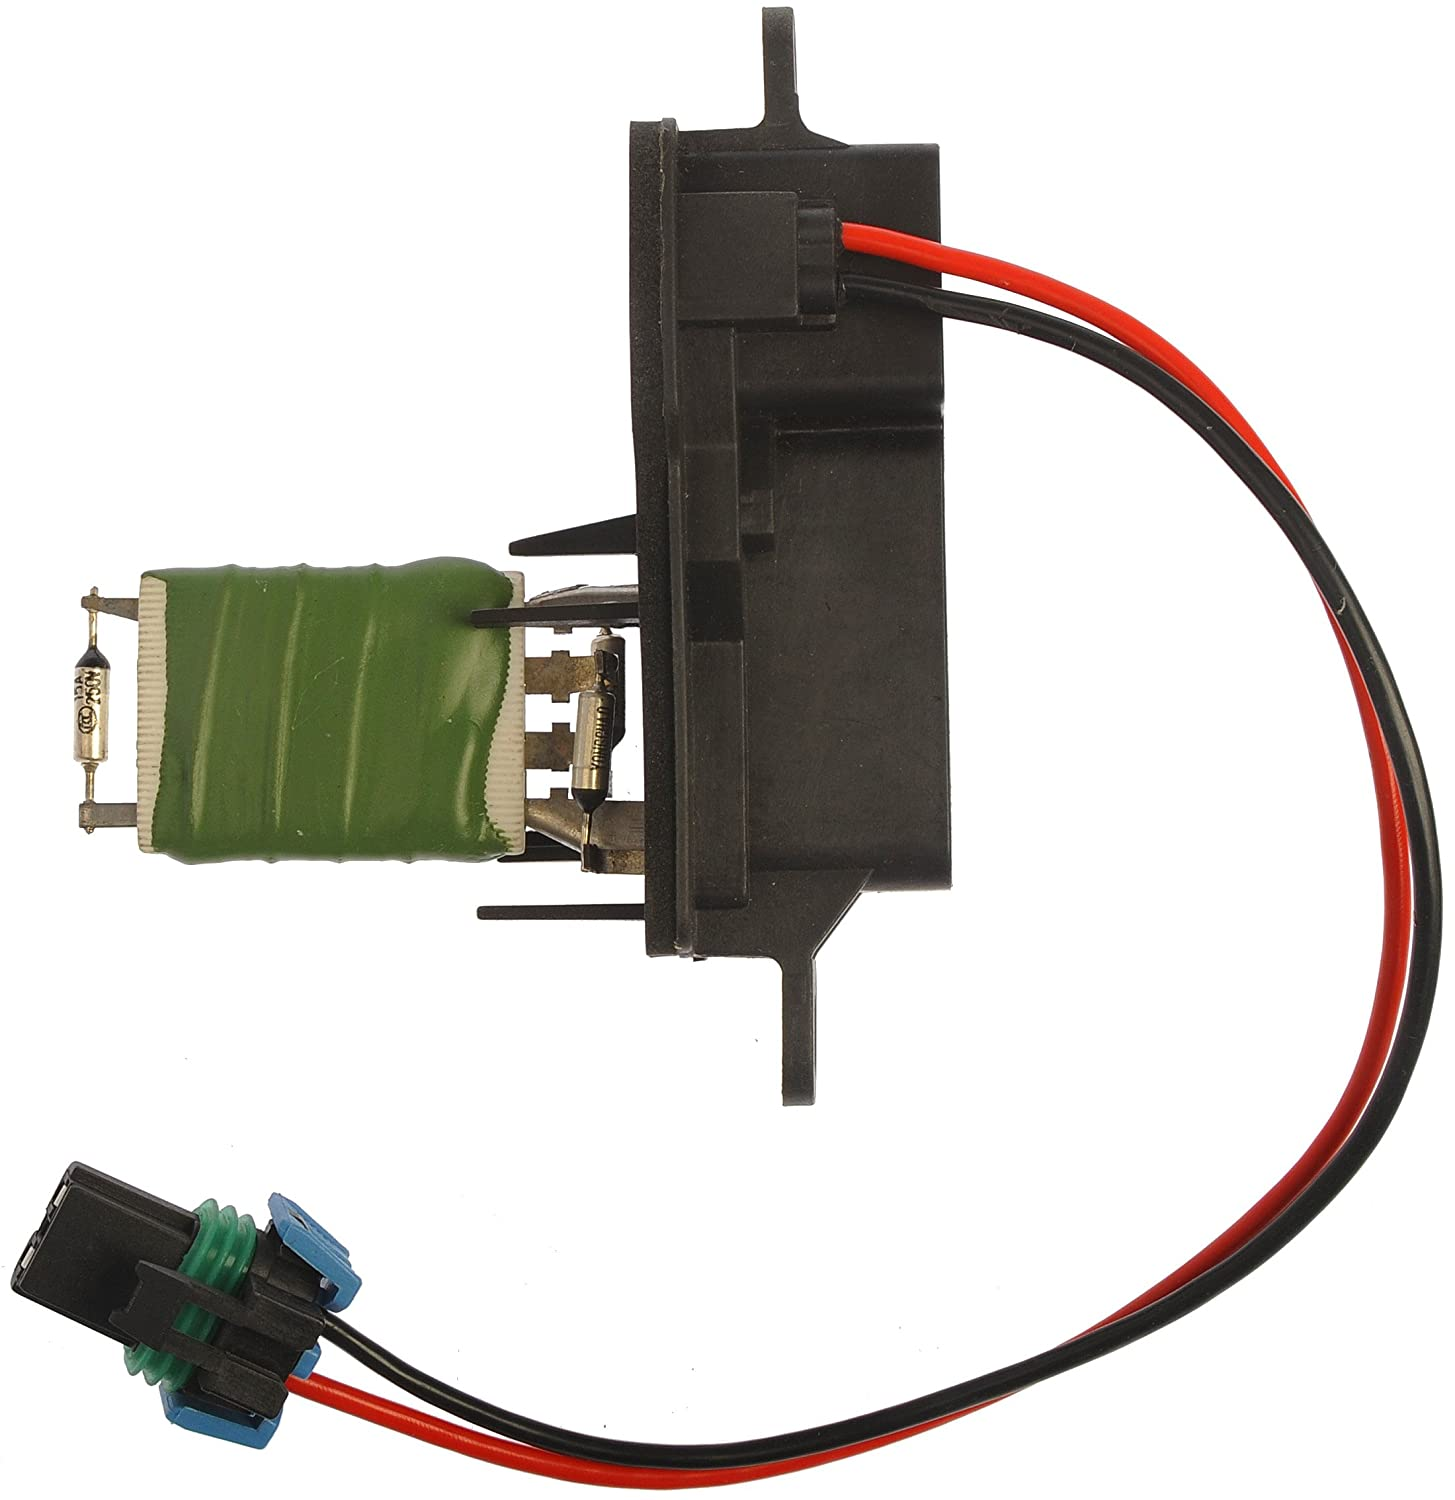 Dorman 973 007 Blower Motor Resistor For Chevrolet Gmc The And Wiring To Components Techoice Dor973007